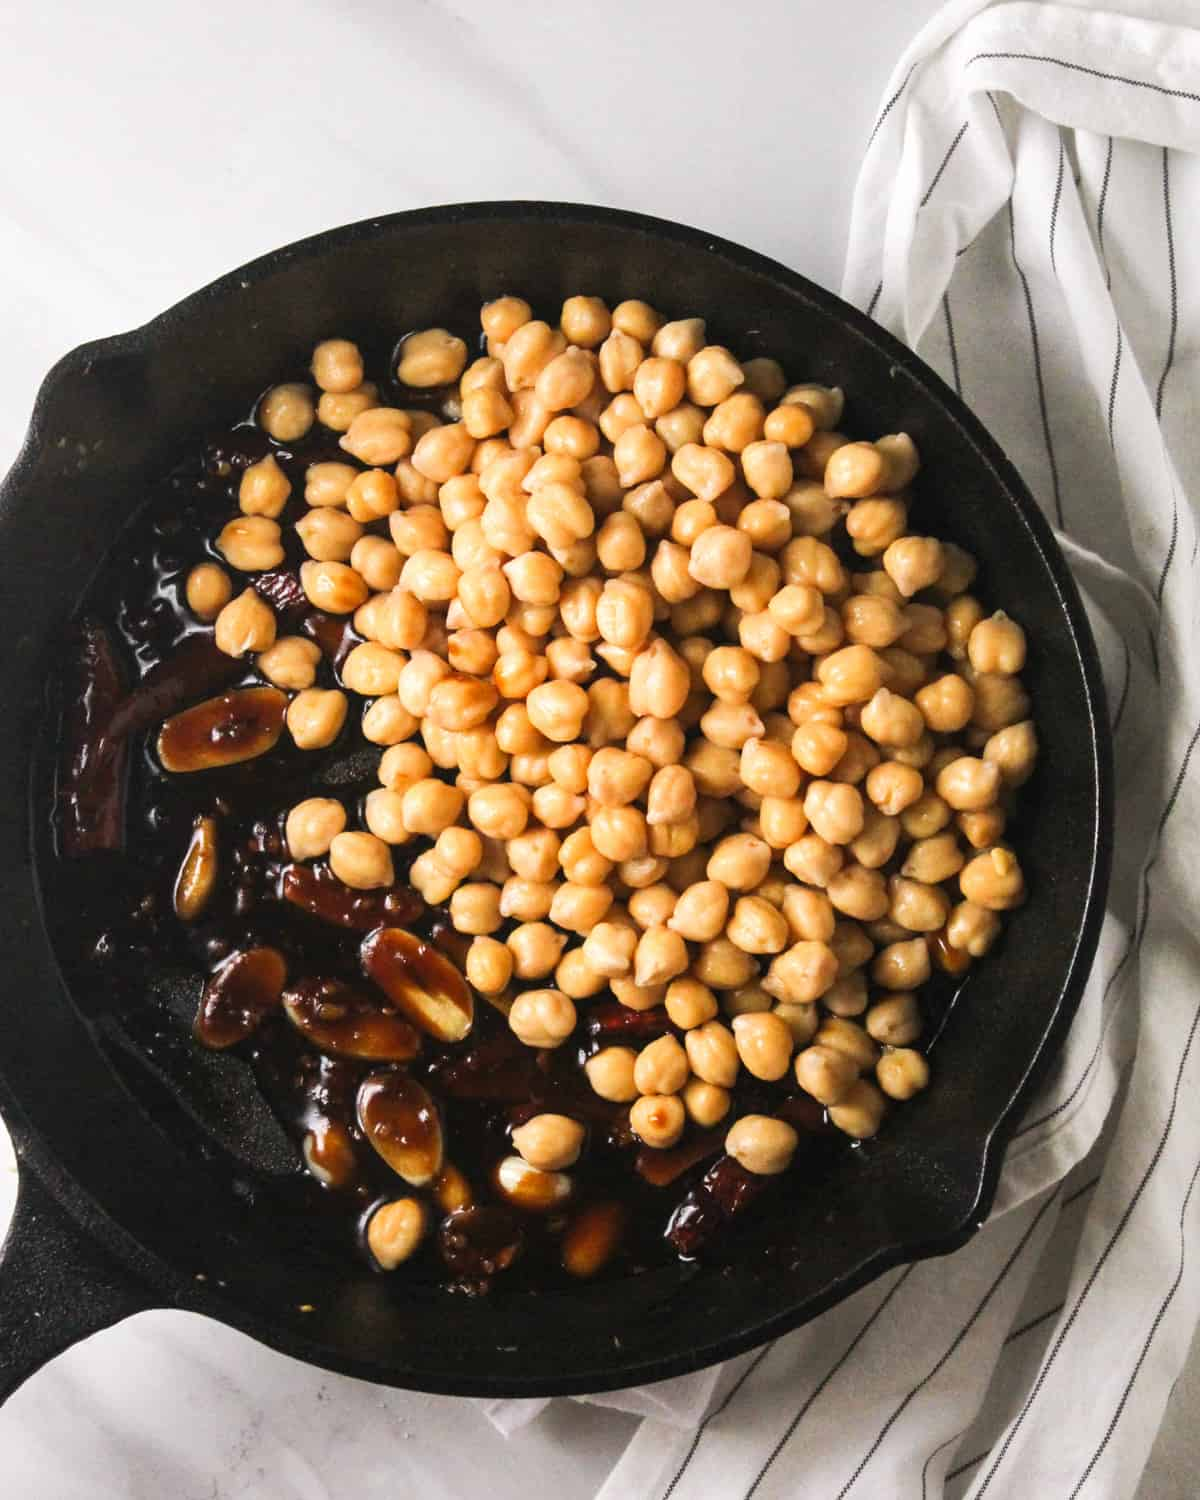 Adding chickpeas into the skillet